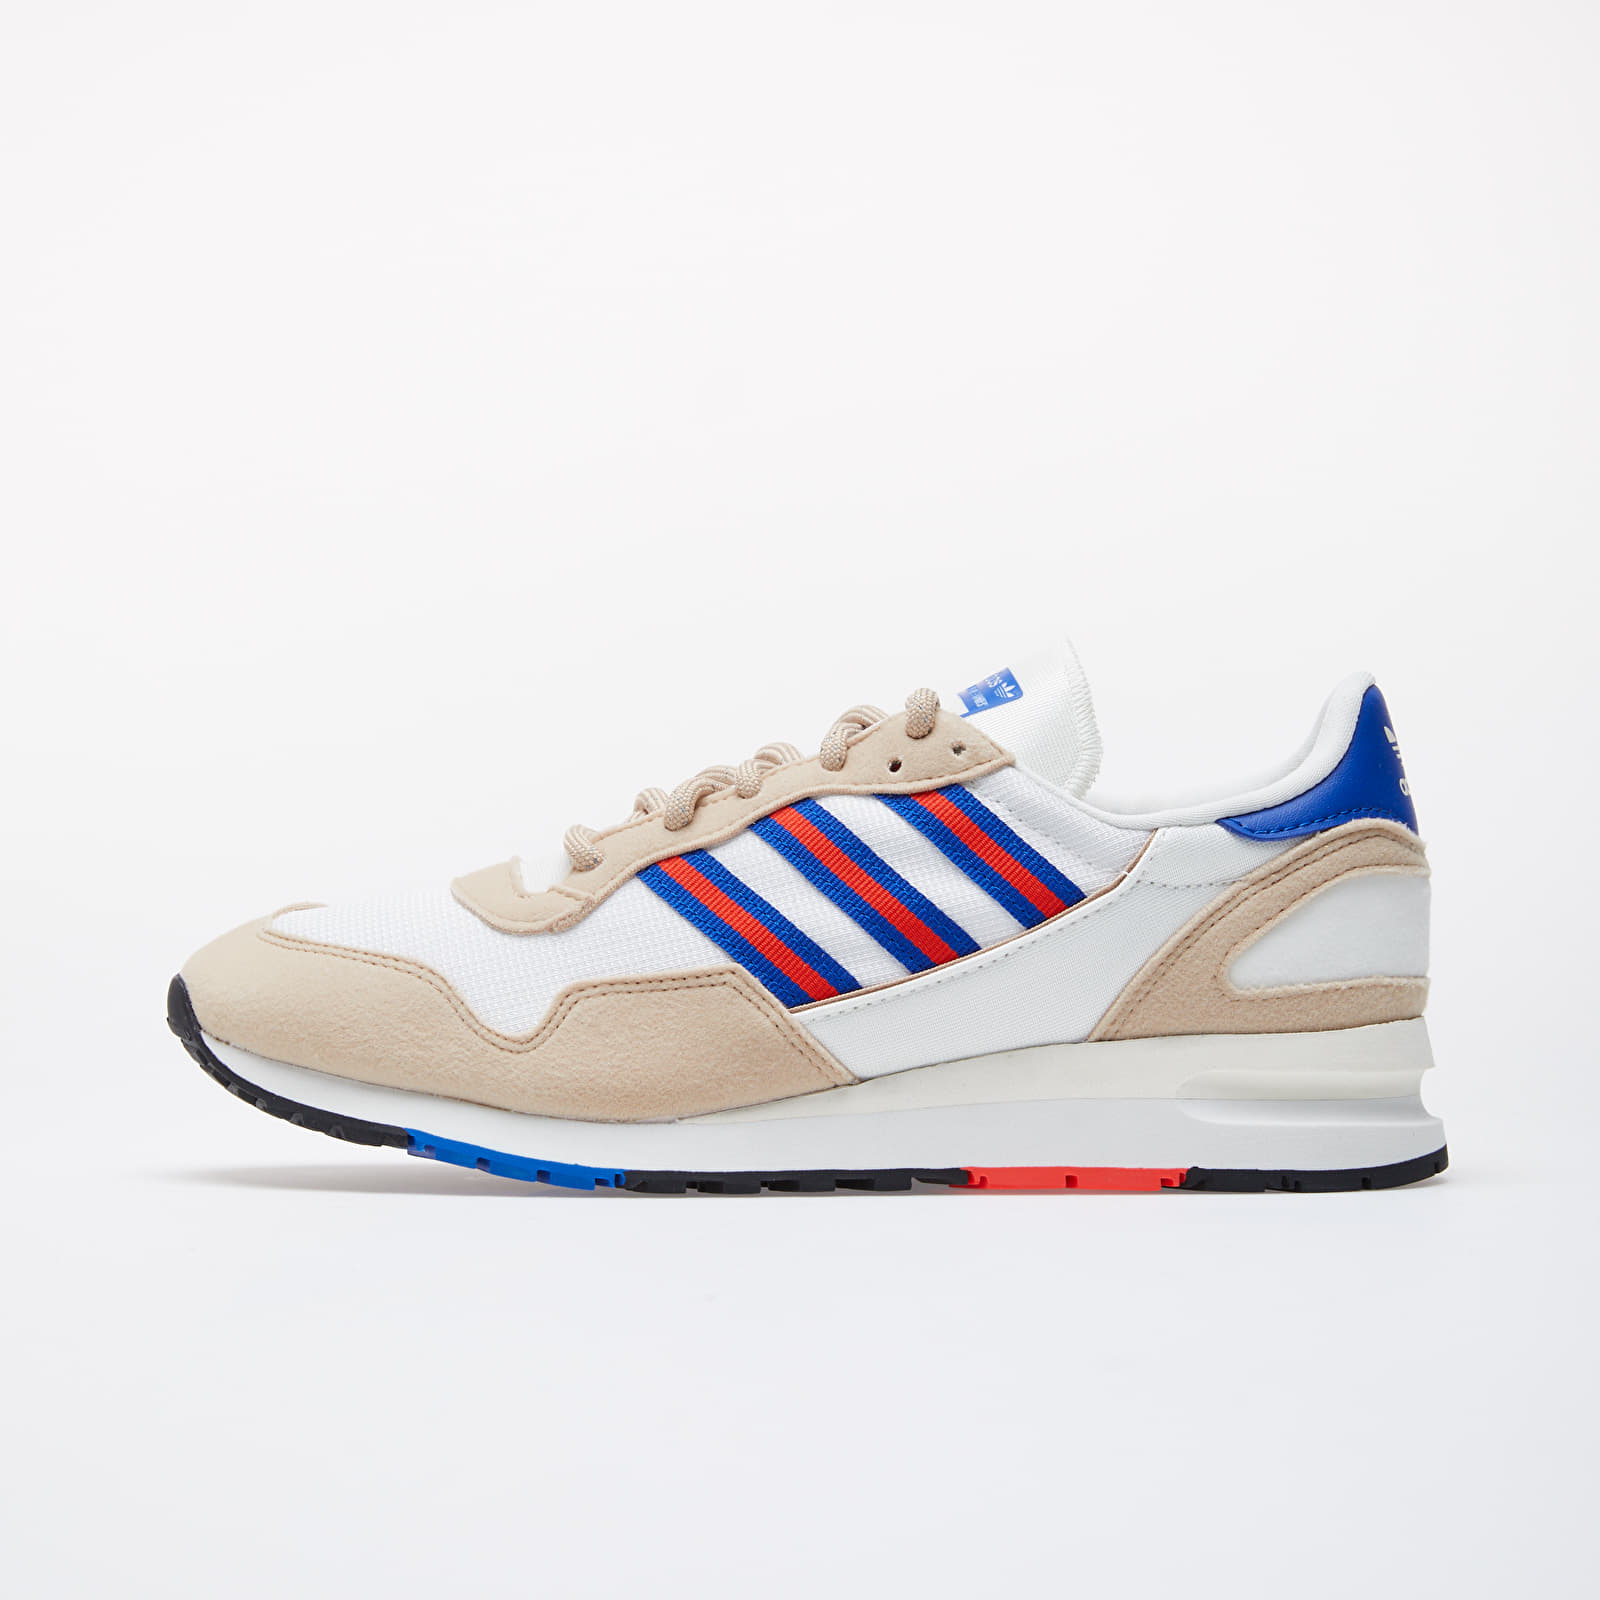 Men's shoes adidas Lowertree Off White/ Hi-Res Red/ Royal Blue